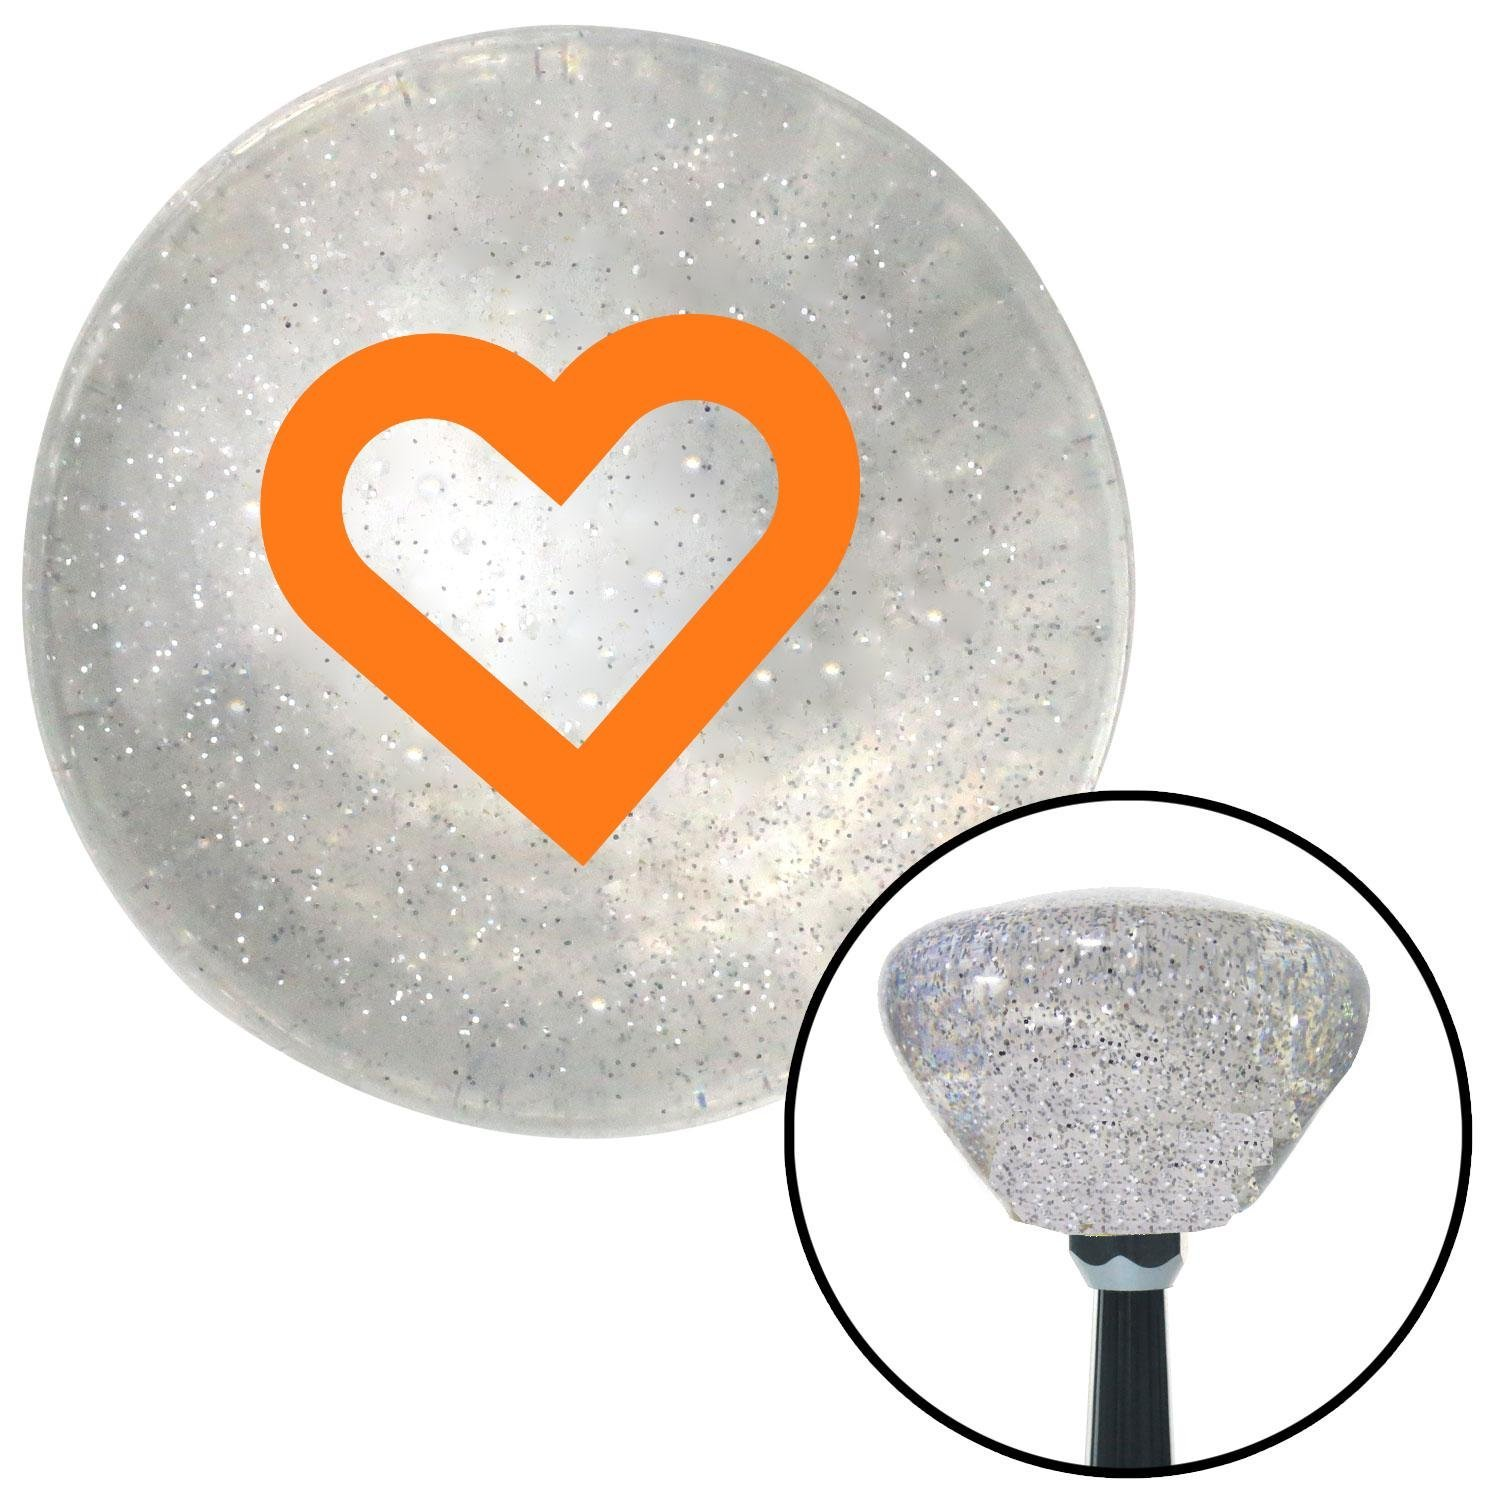 Orange Fat Outlined Heart American Shifter 160977 Clear Retro Metal Flake Shift Knob with M16 x 1.5 Insert